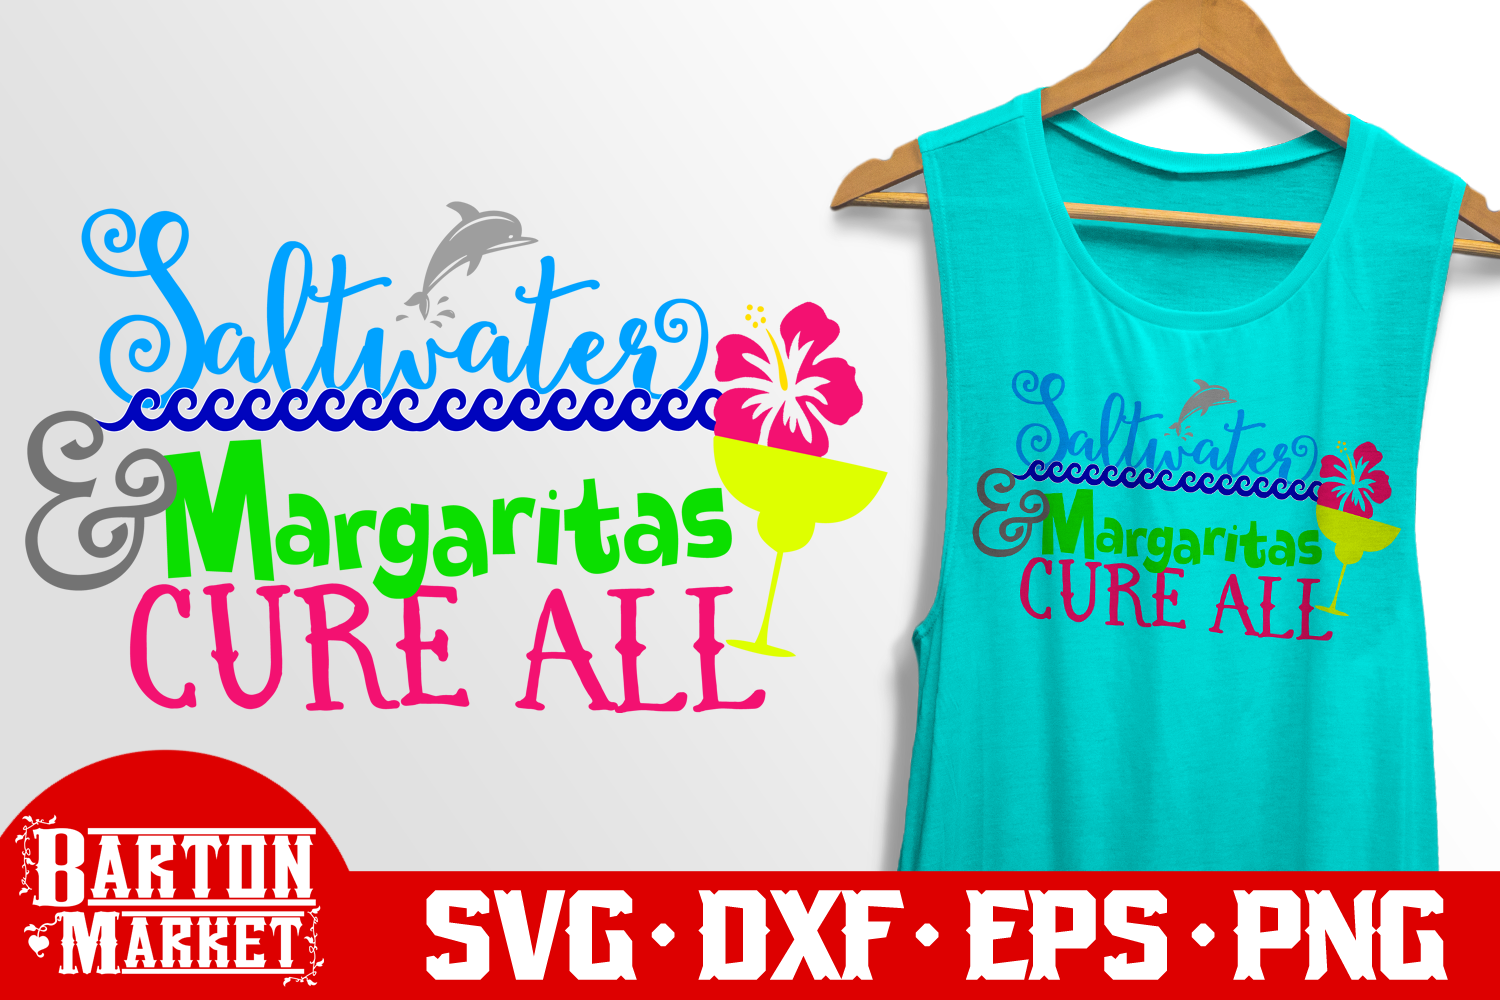 Saltwater & Margaritas Cure All SVG DXF EPS PNG example image 2